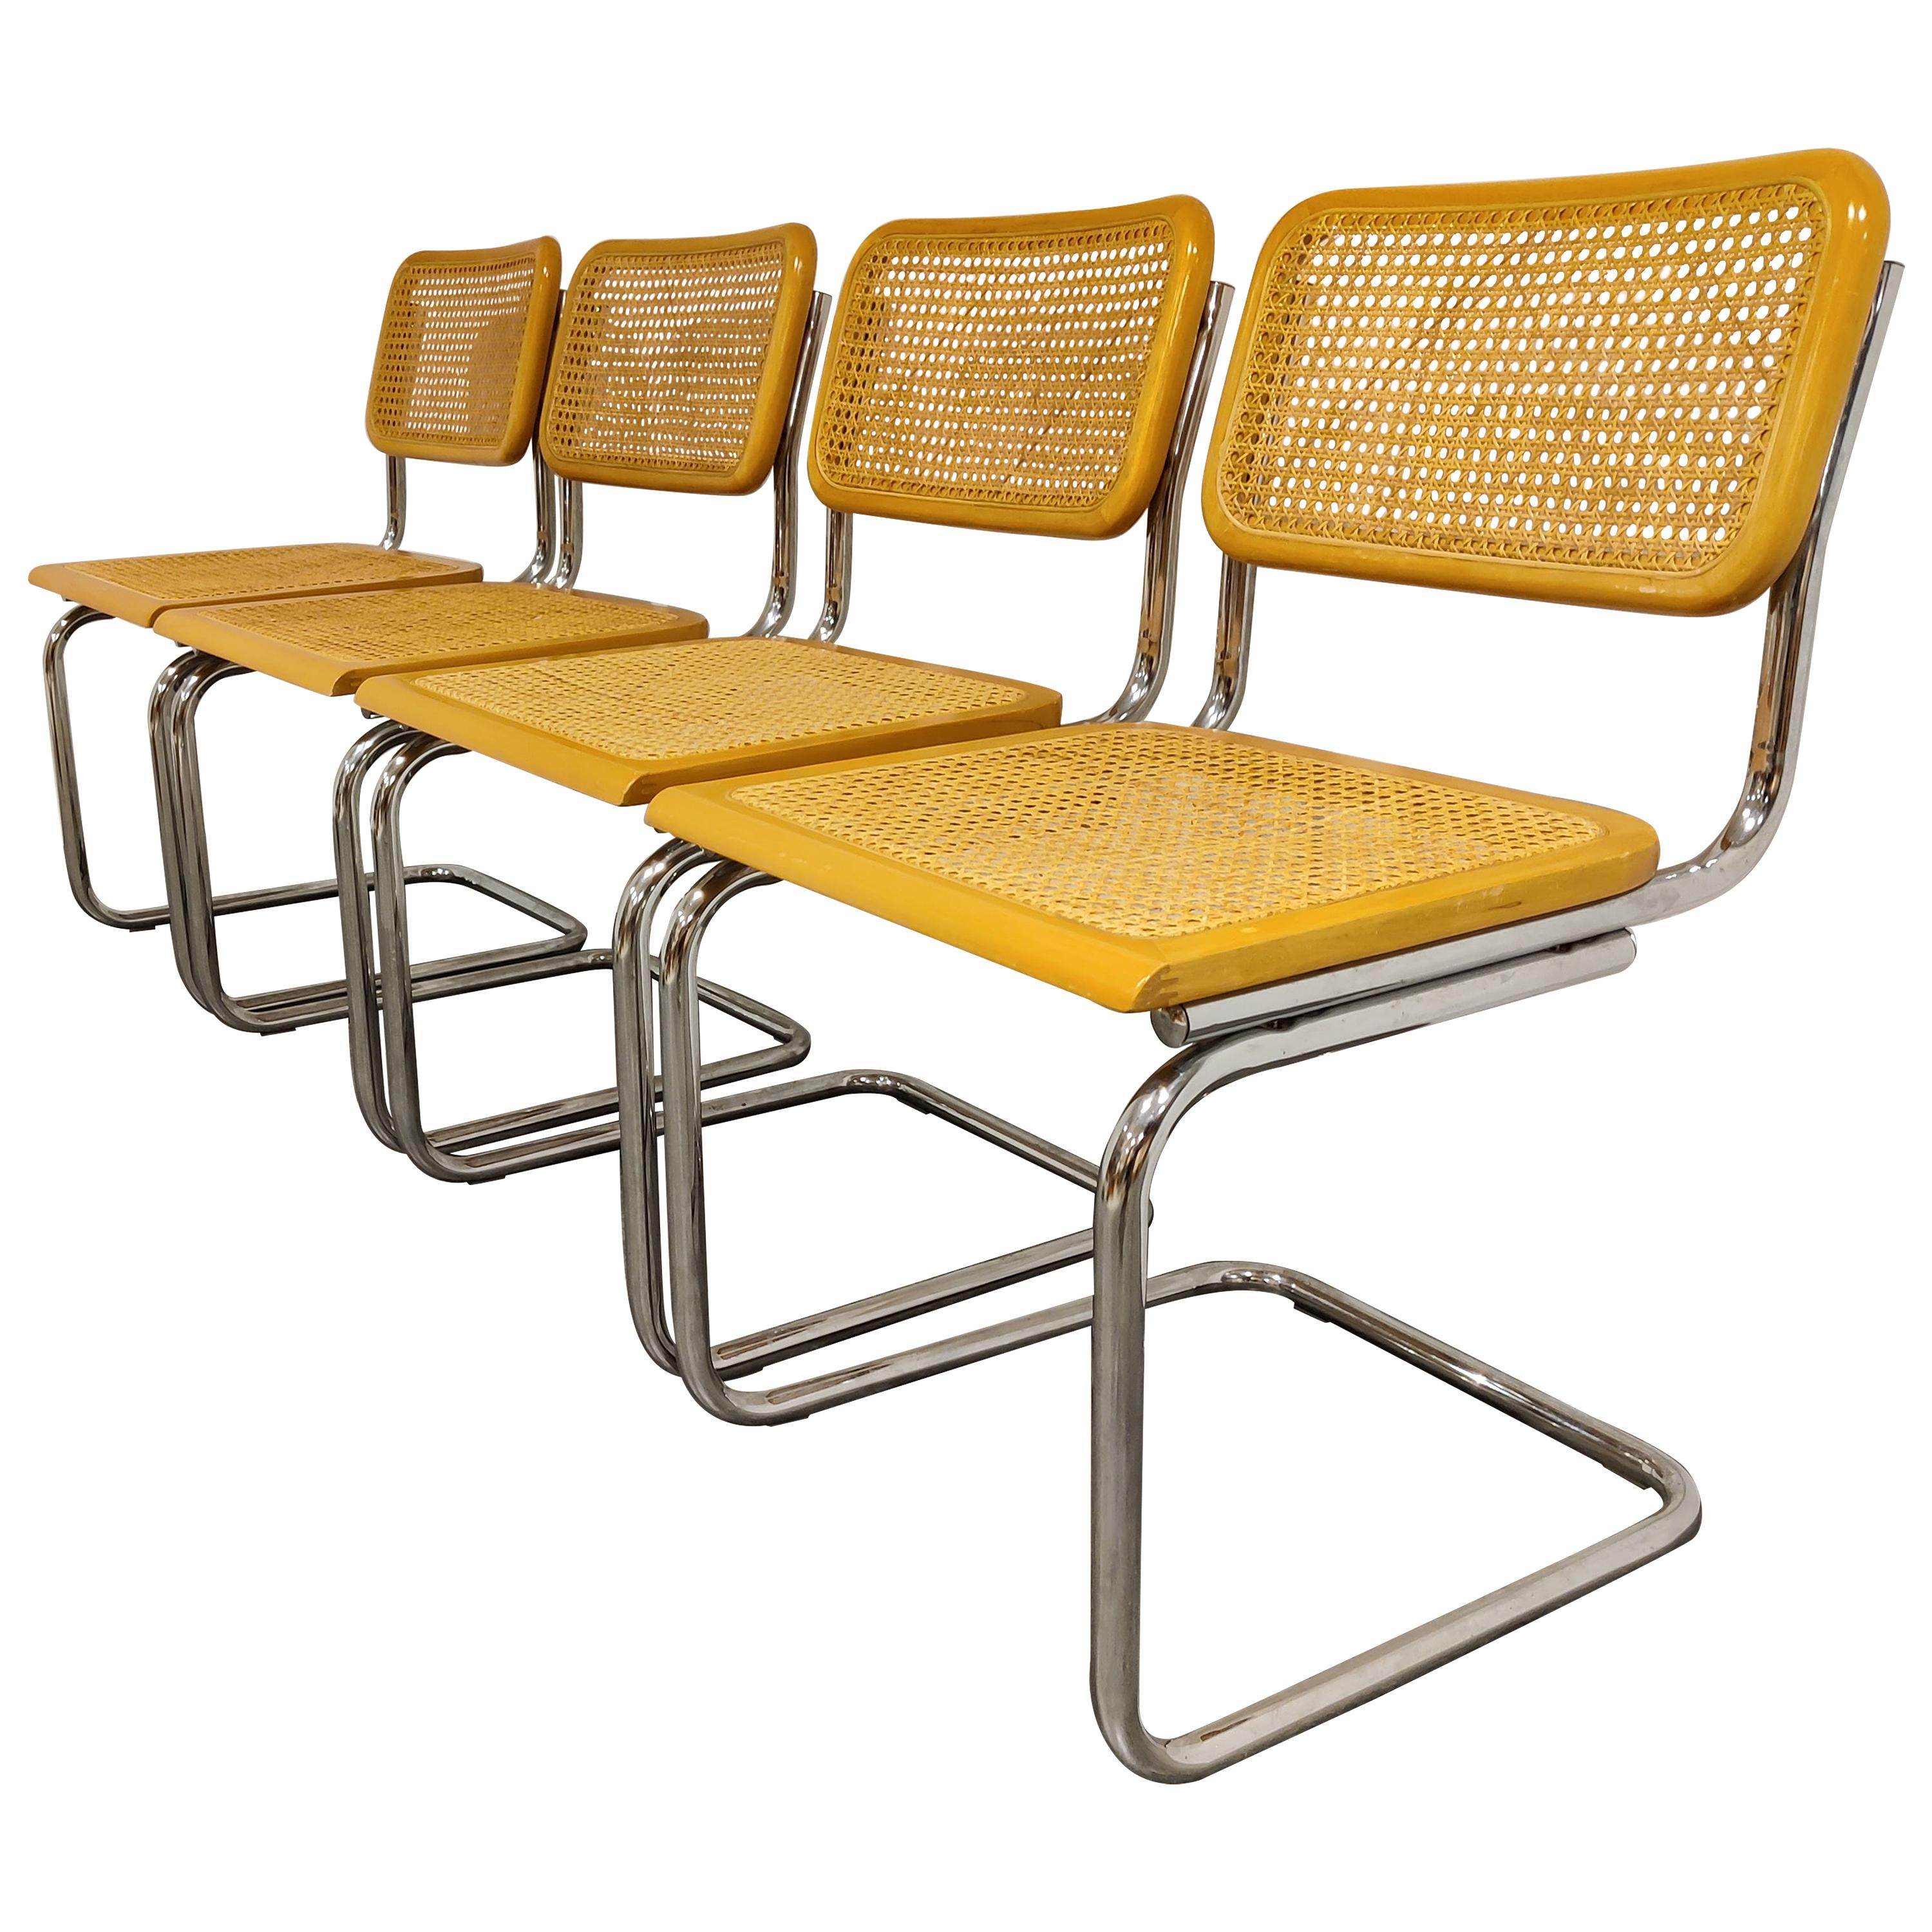 Set of 4 Vintage Marcel Breuer Style Cesca Chairs, Made in Italy, 1970s